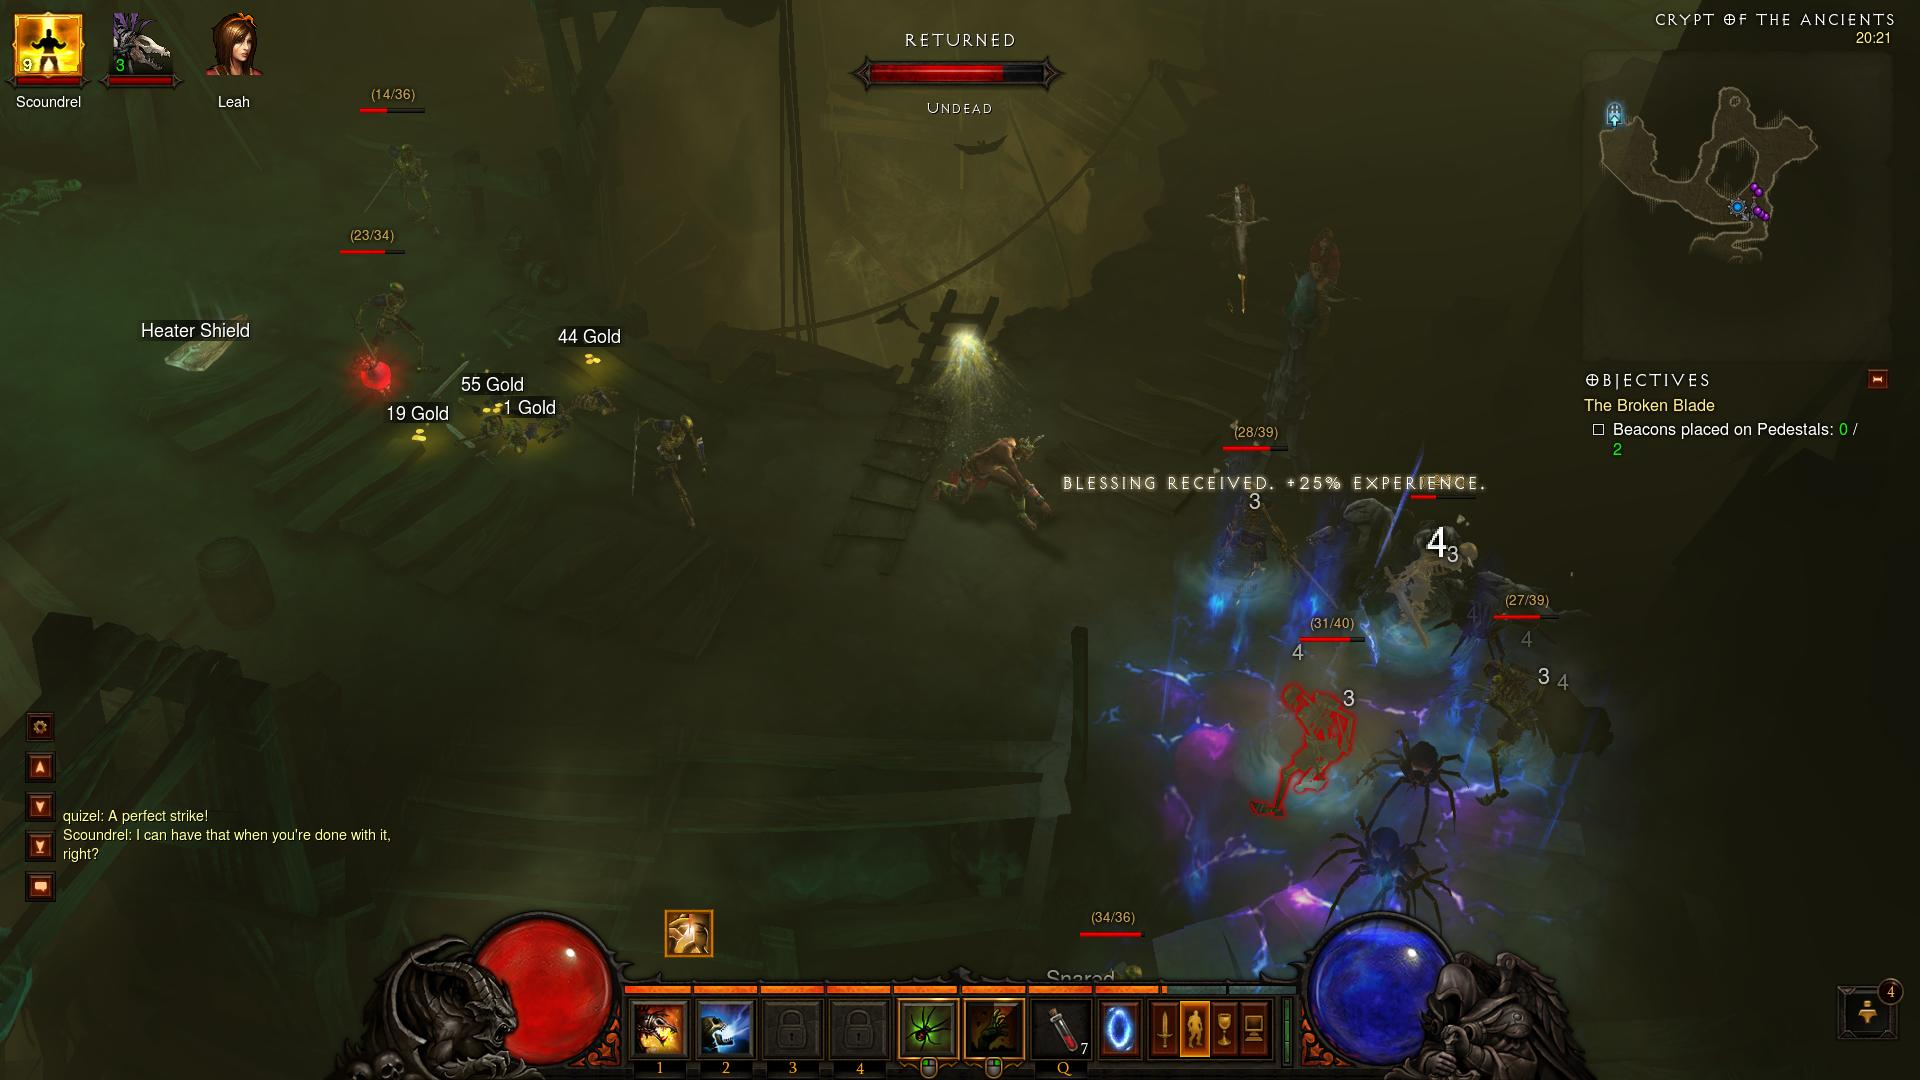 best way to get ancients diablo 3